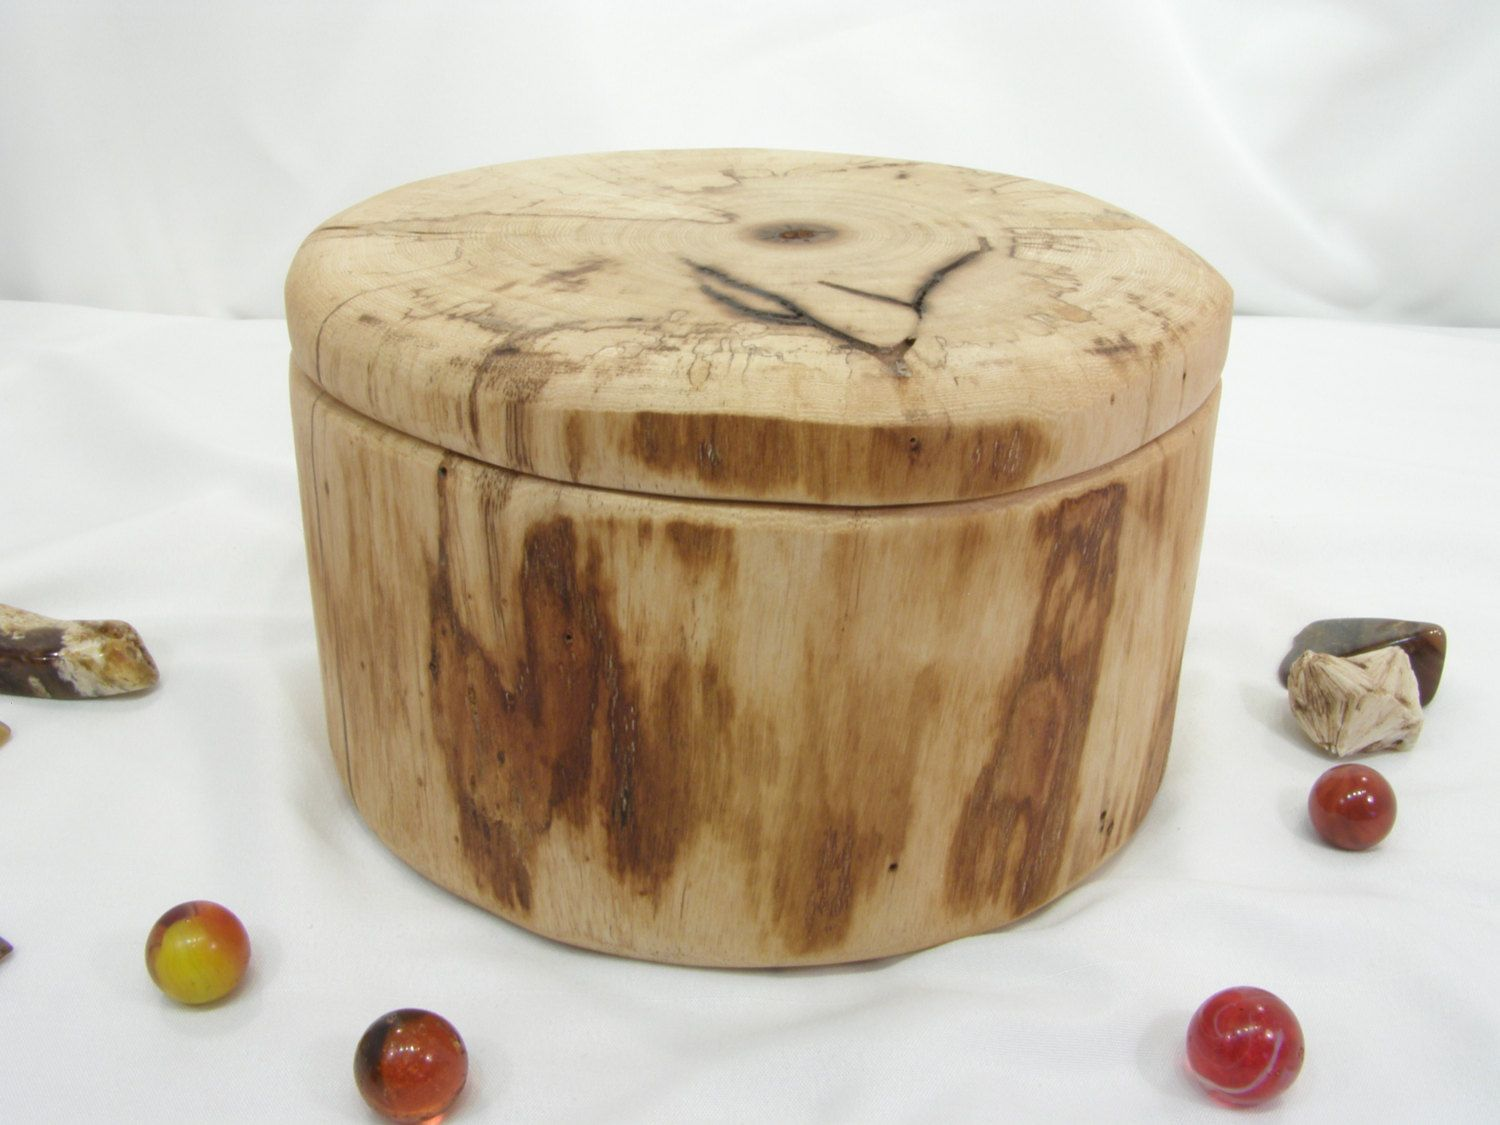 Oregon Ash Driftwood Wooden Box Cremation Urn Pet Valet 5th Anniversary Wedding Gift Jewelry Groom